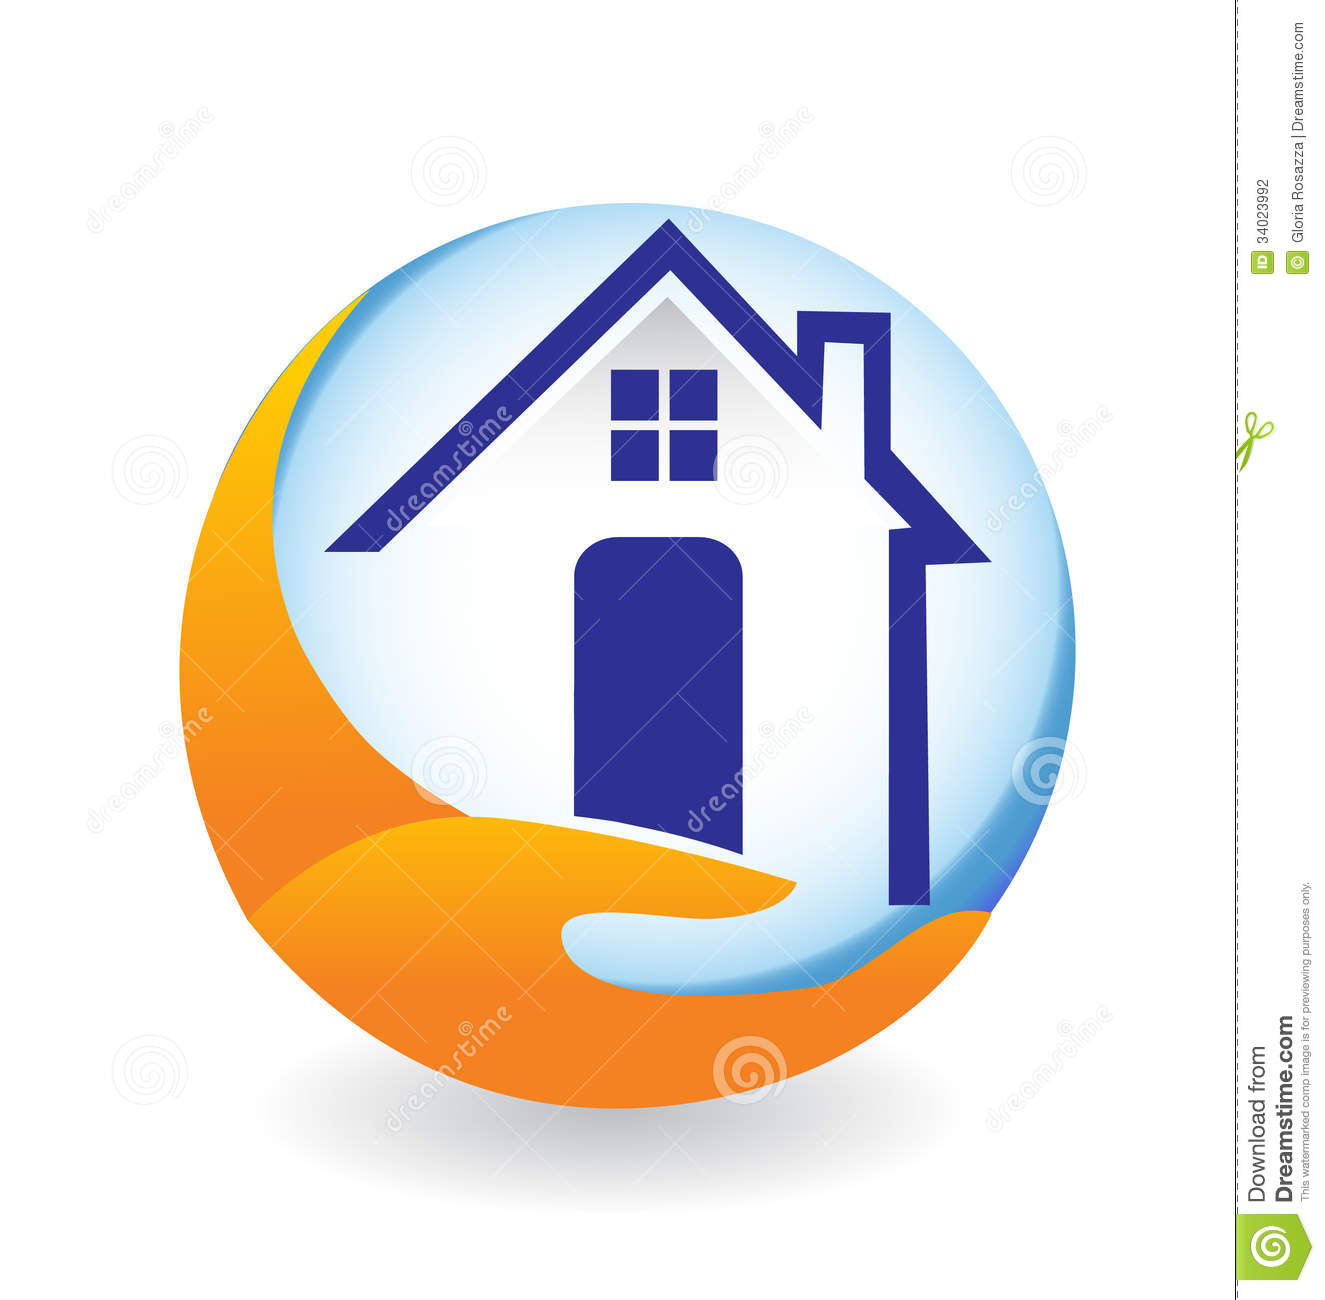 House logo stock photography image 34023992 for House design company